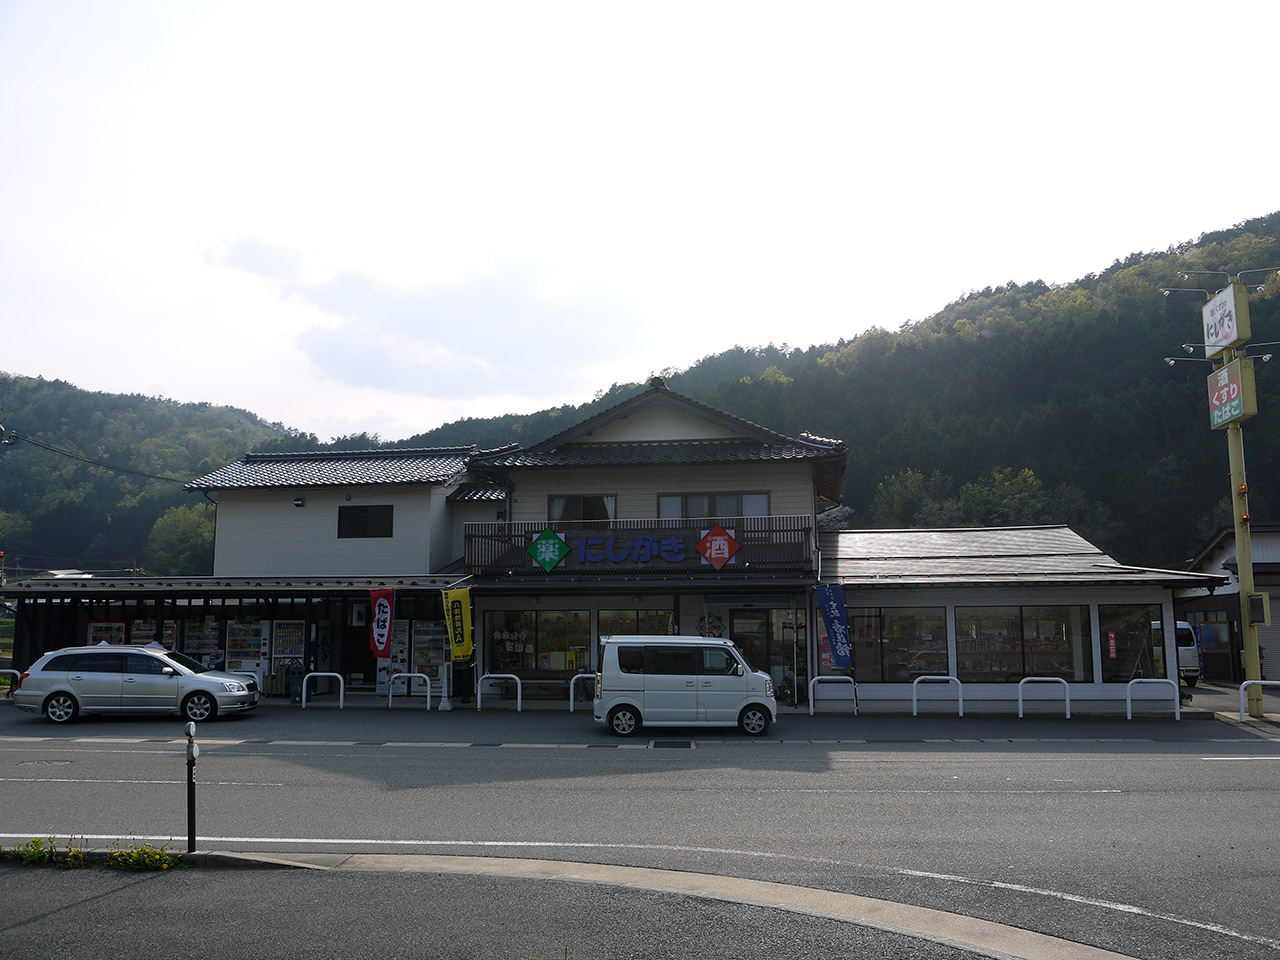 A pharmacy near the Japanese Egg Vending Machine